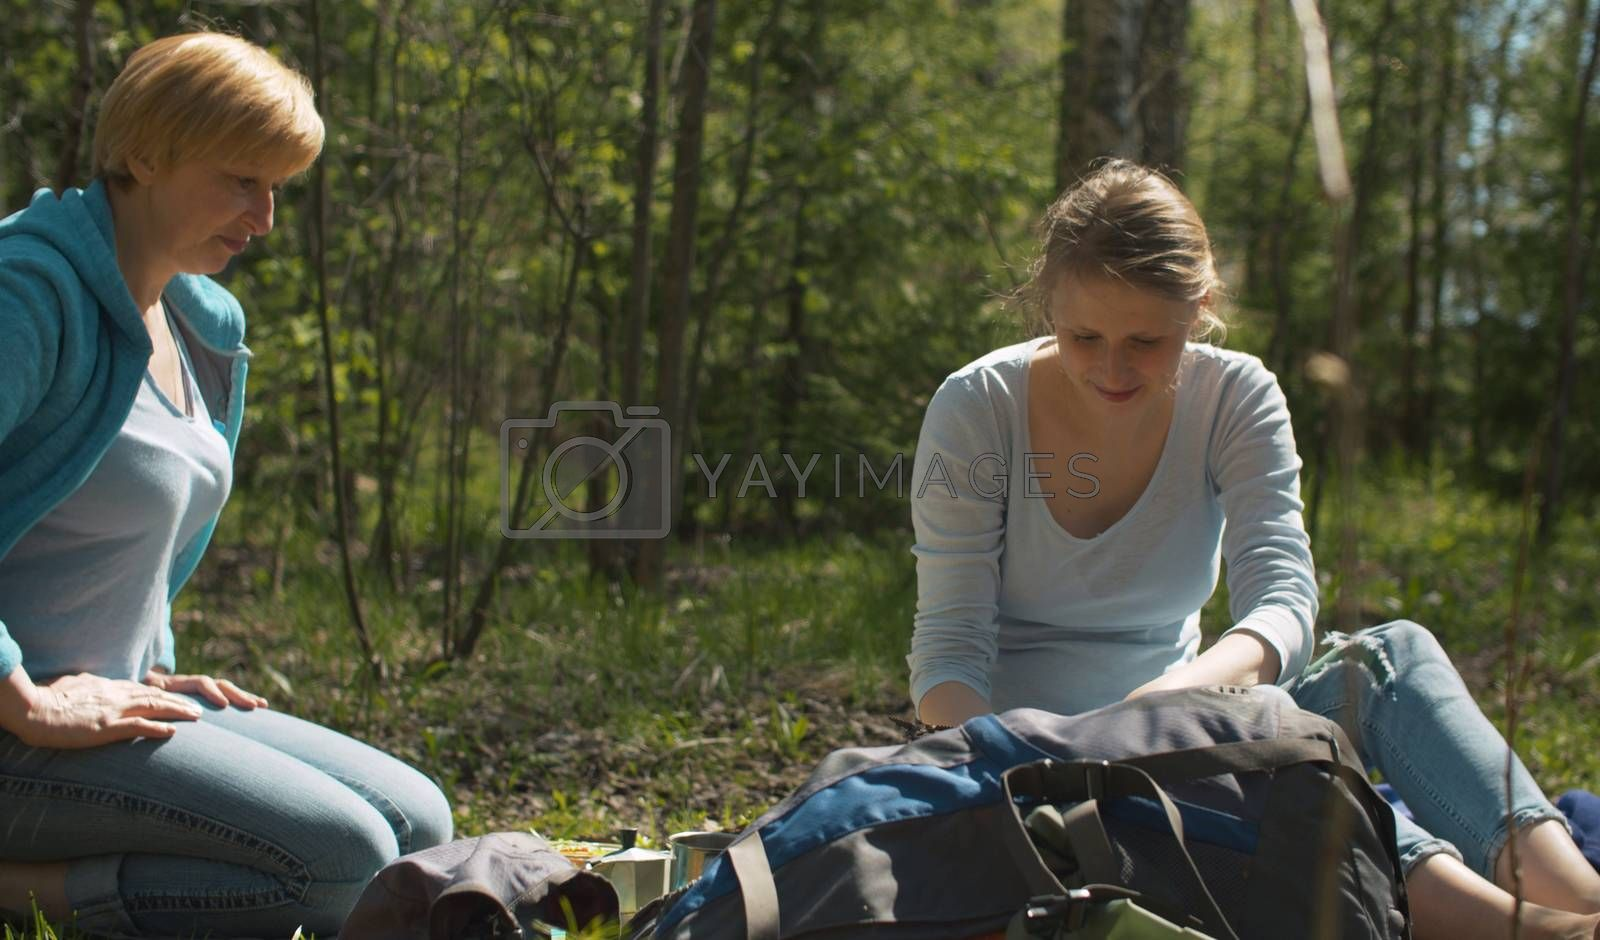 Snack during trekking. Two women sitting on the grass in the forest. They take out a italian espresso maker and a lunch box from a backpack.